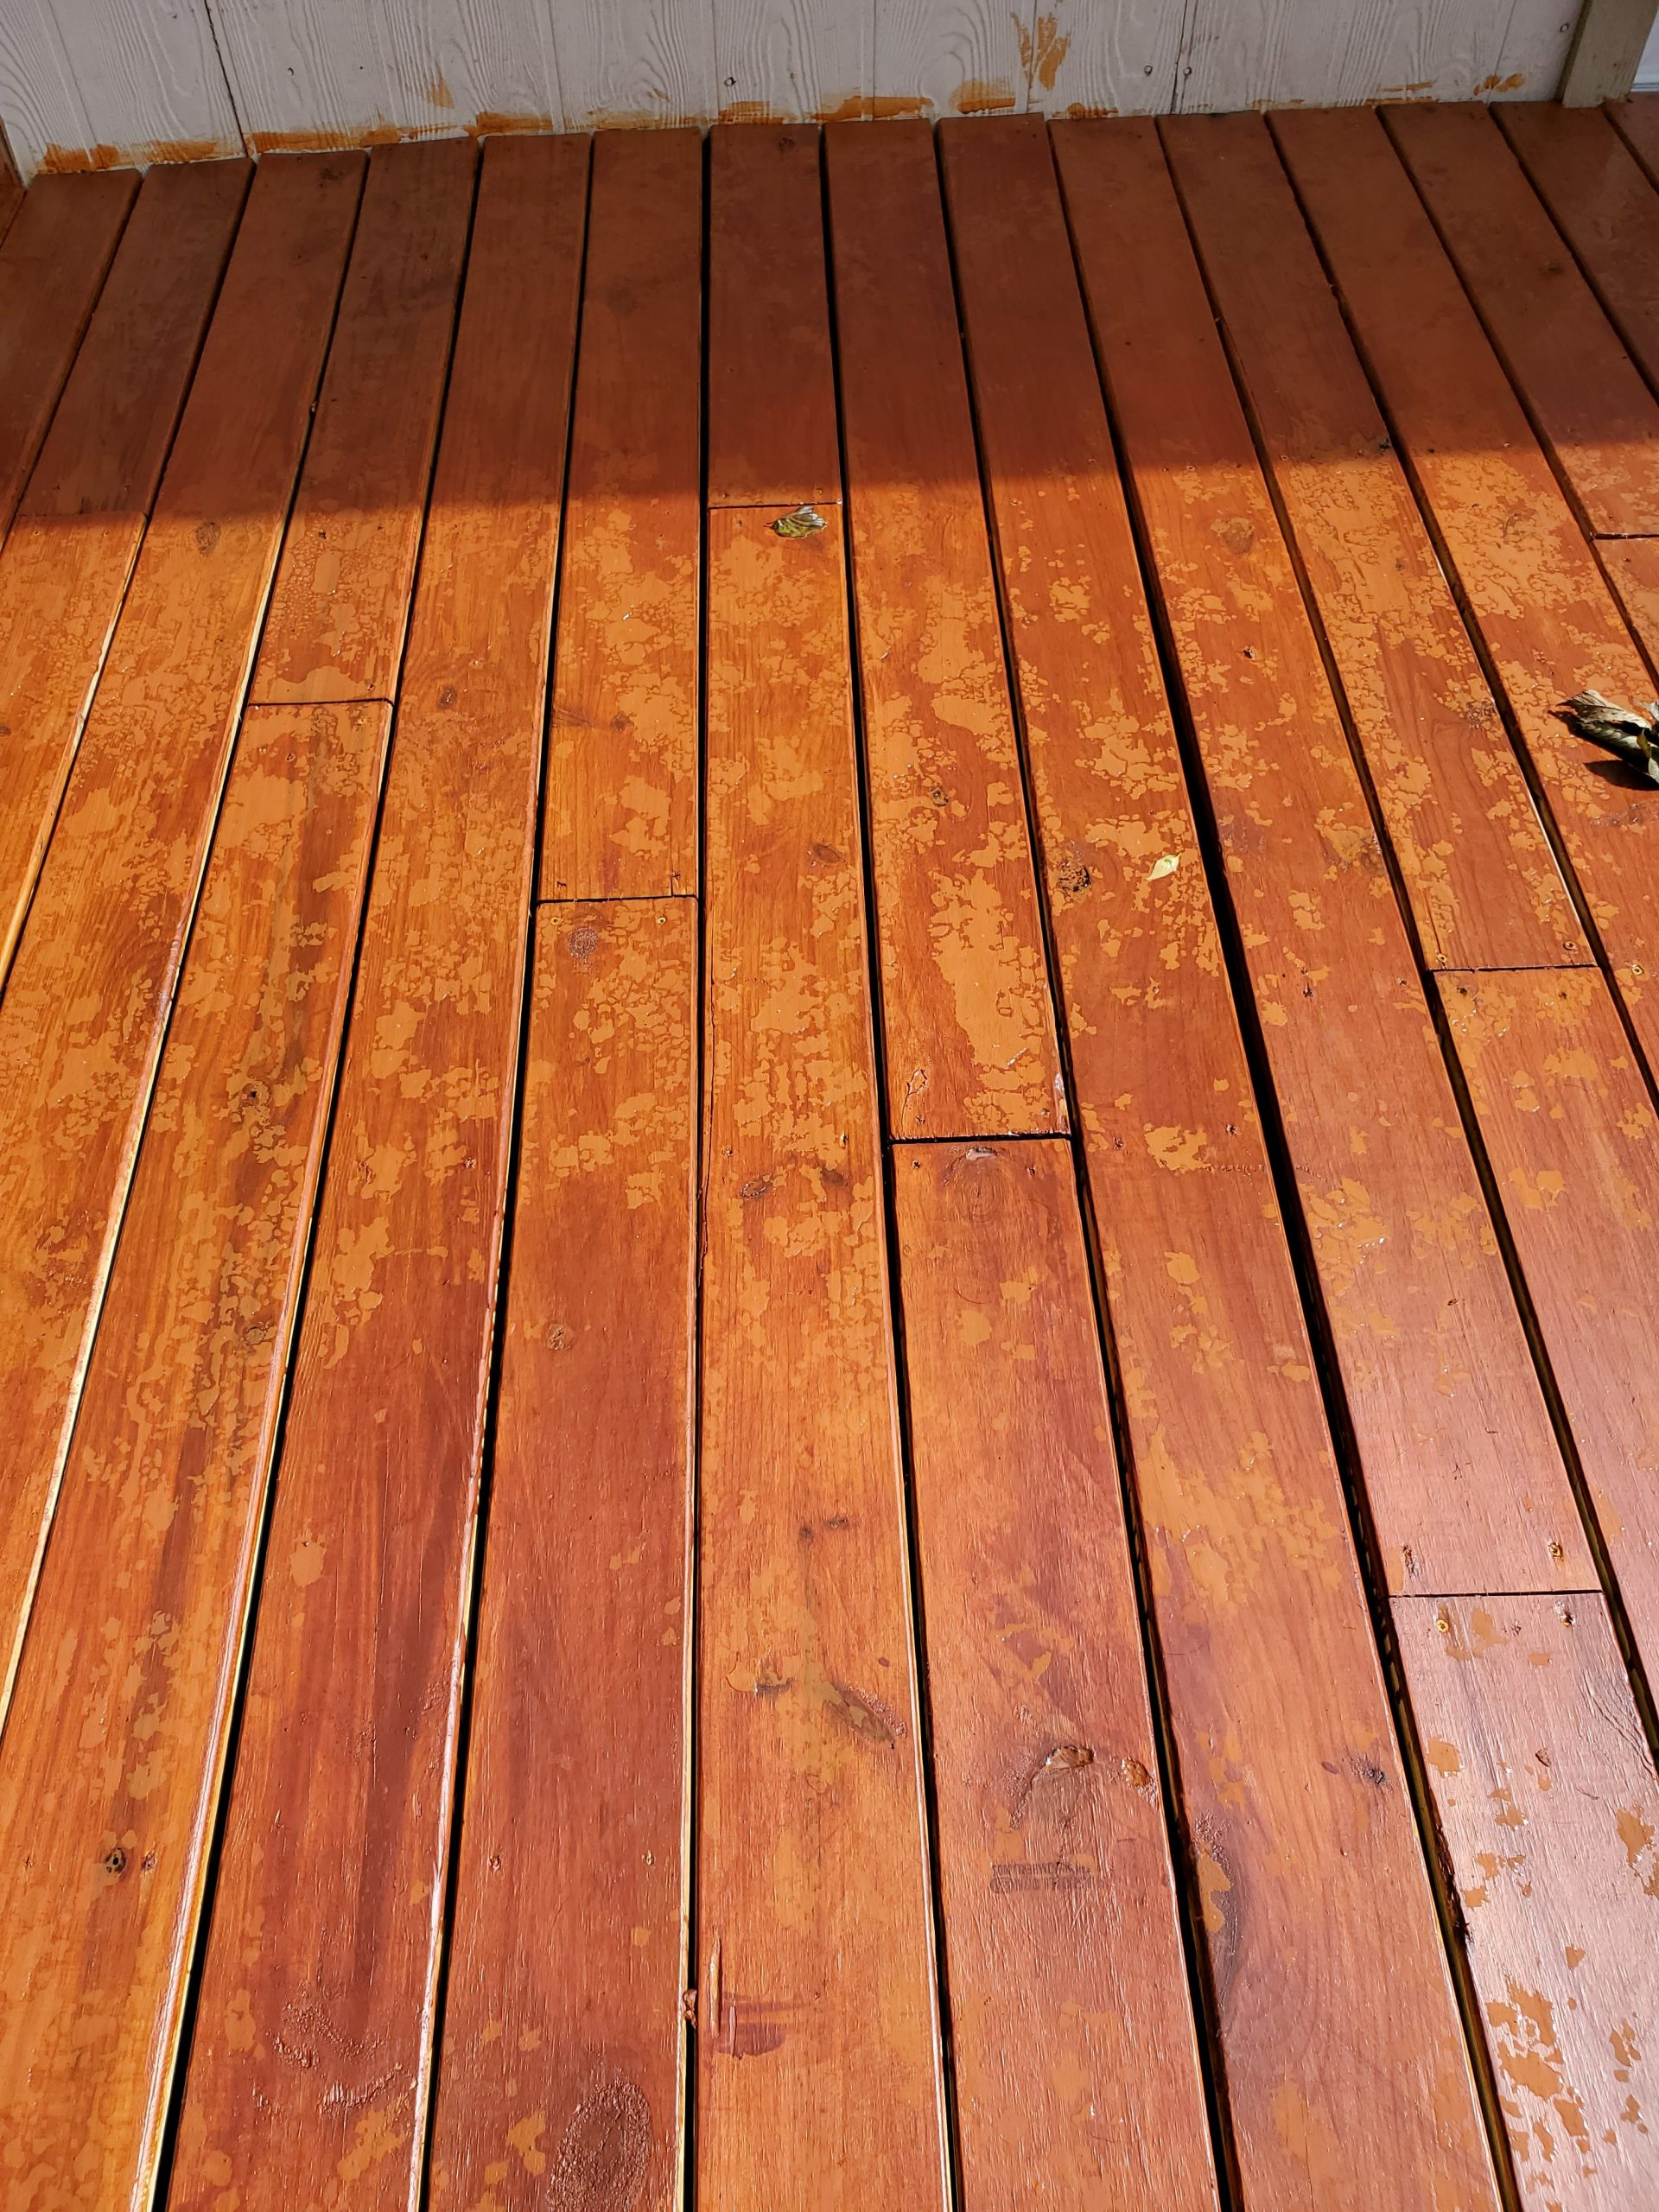 It Rained Shortly After Staining What To Do Best Deck Stain Reviews Ratings